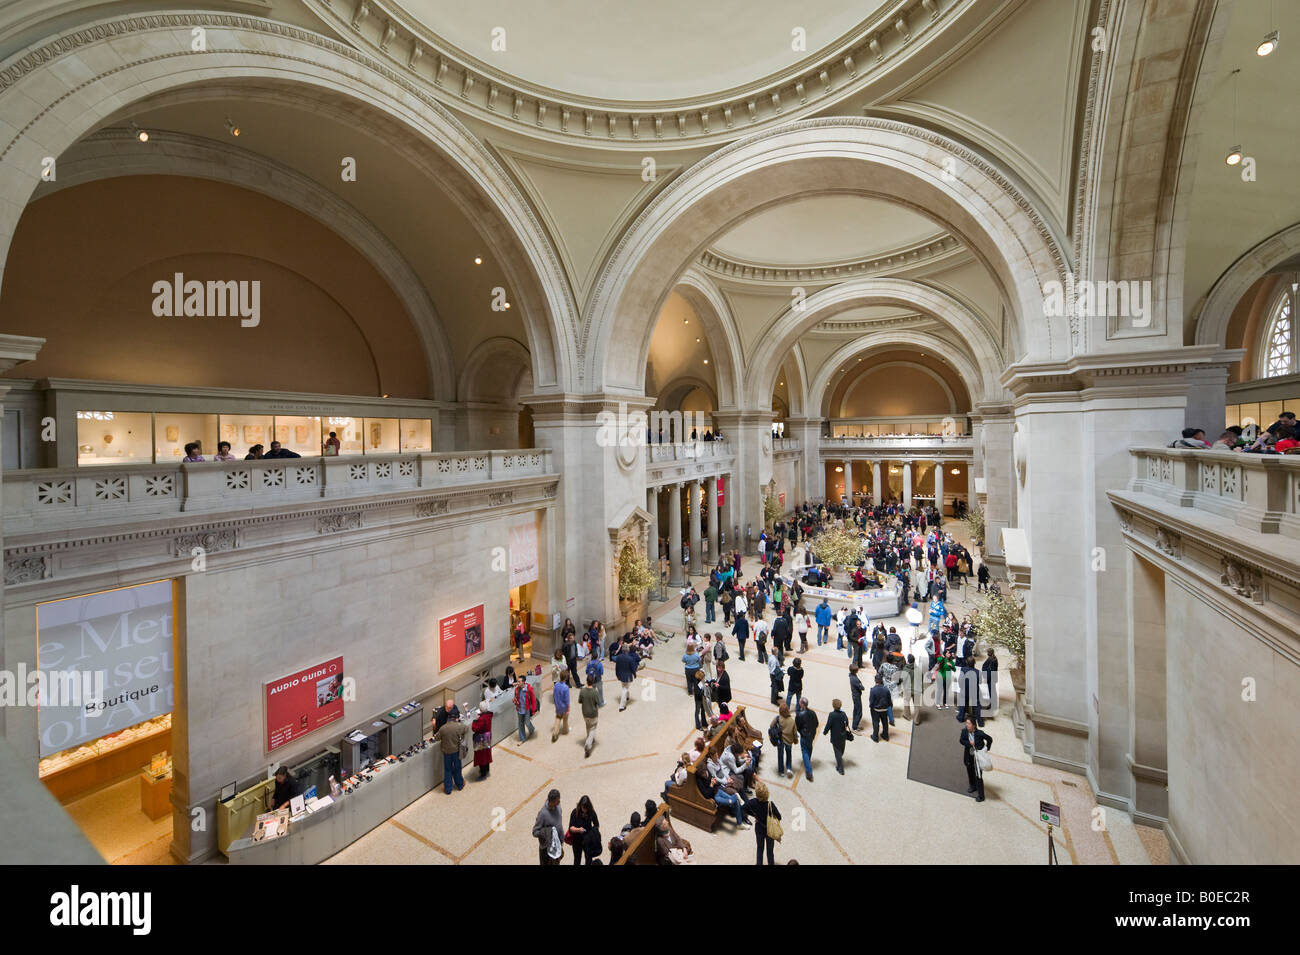 Great Hall of the Metropolitan Museum of Art, Fifth Avenue, New York City Stock Photo